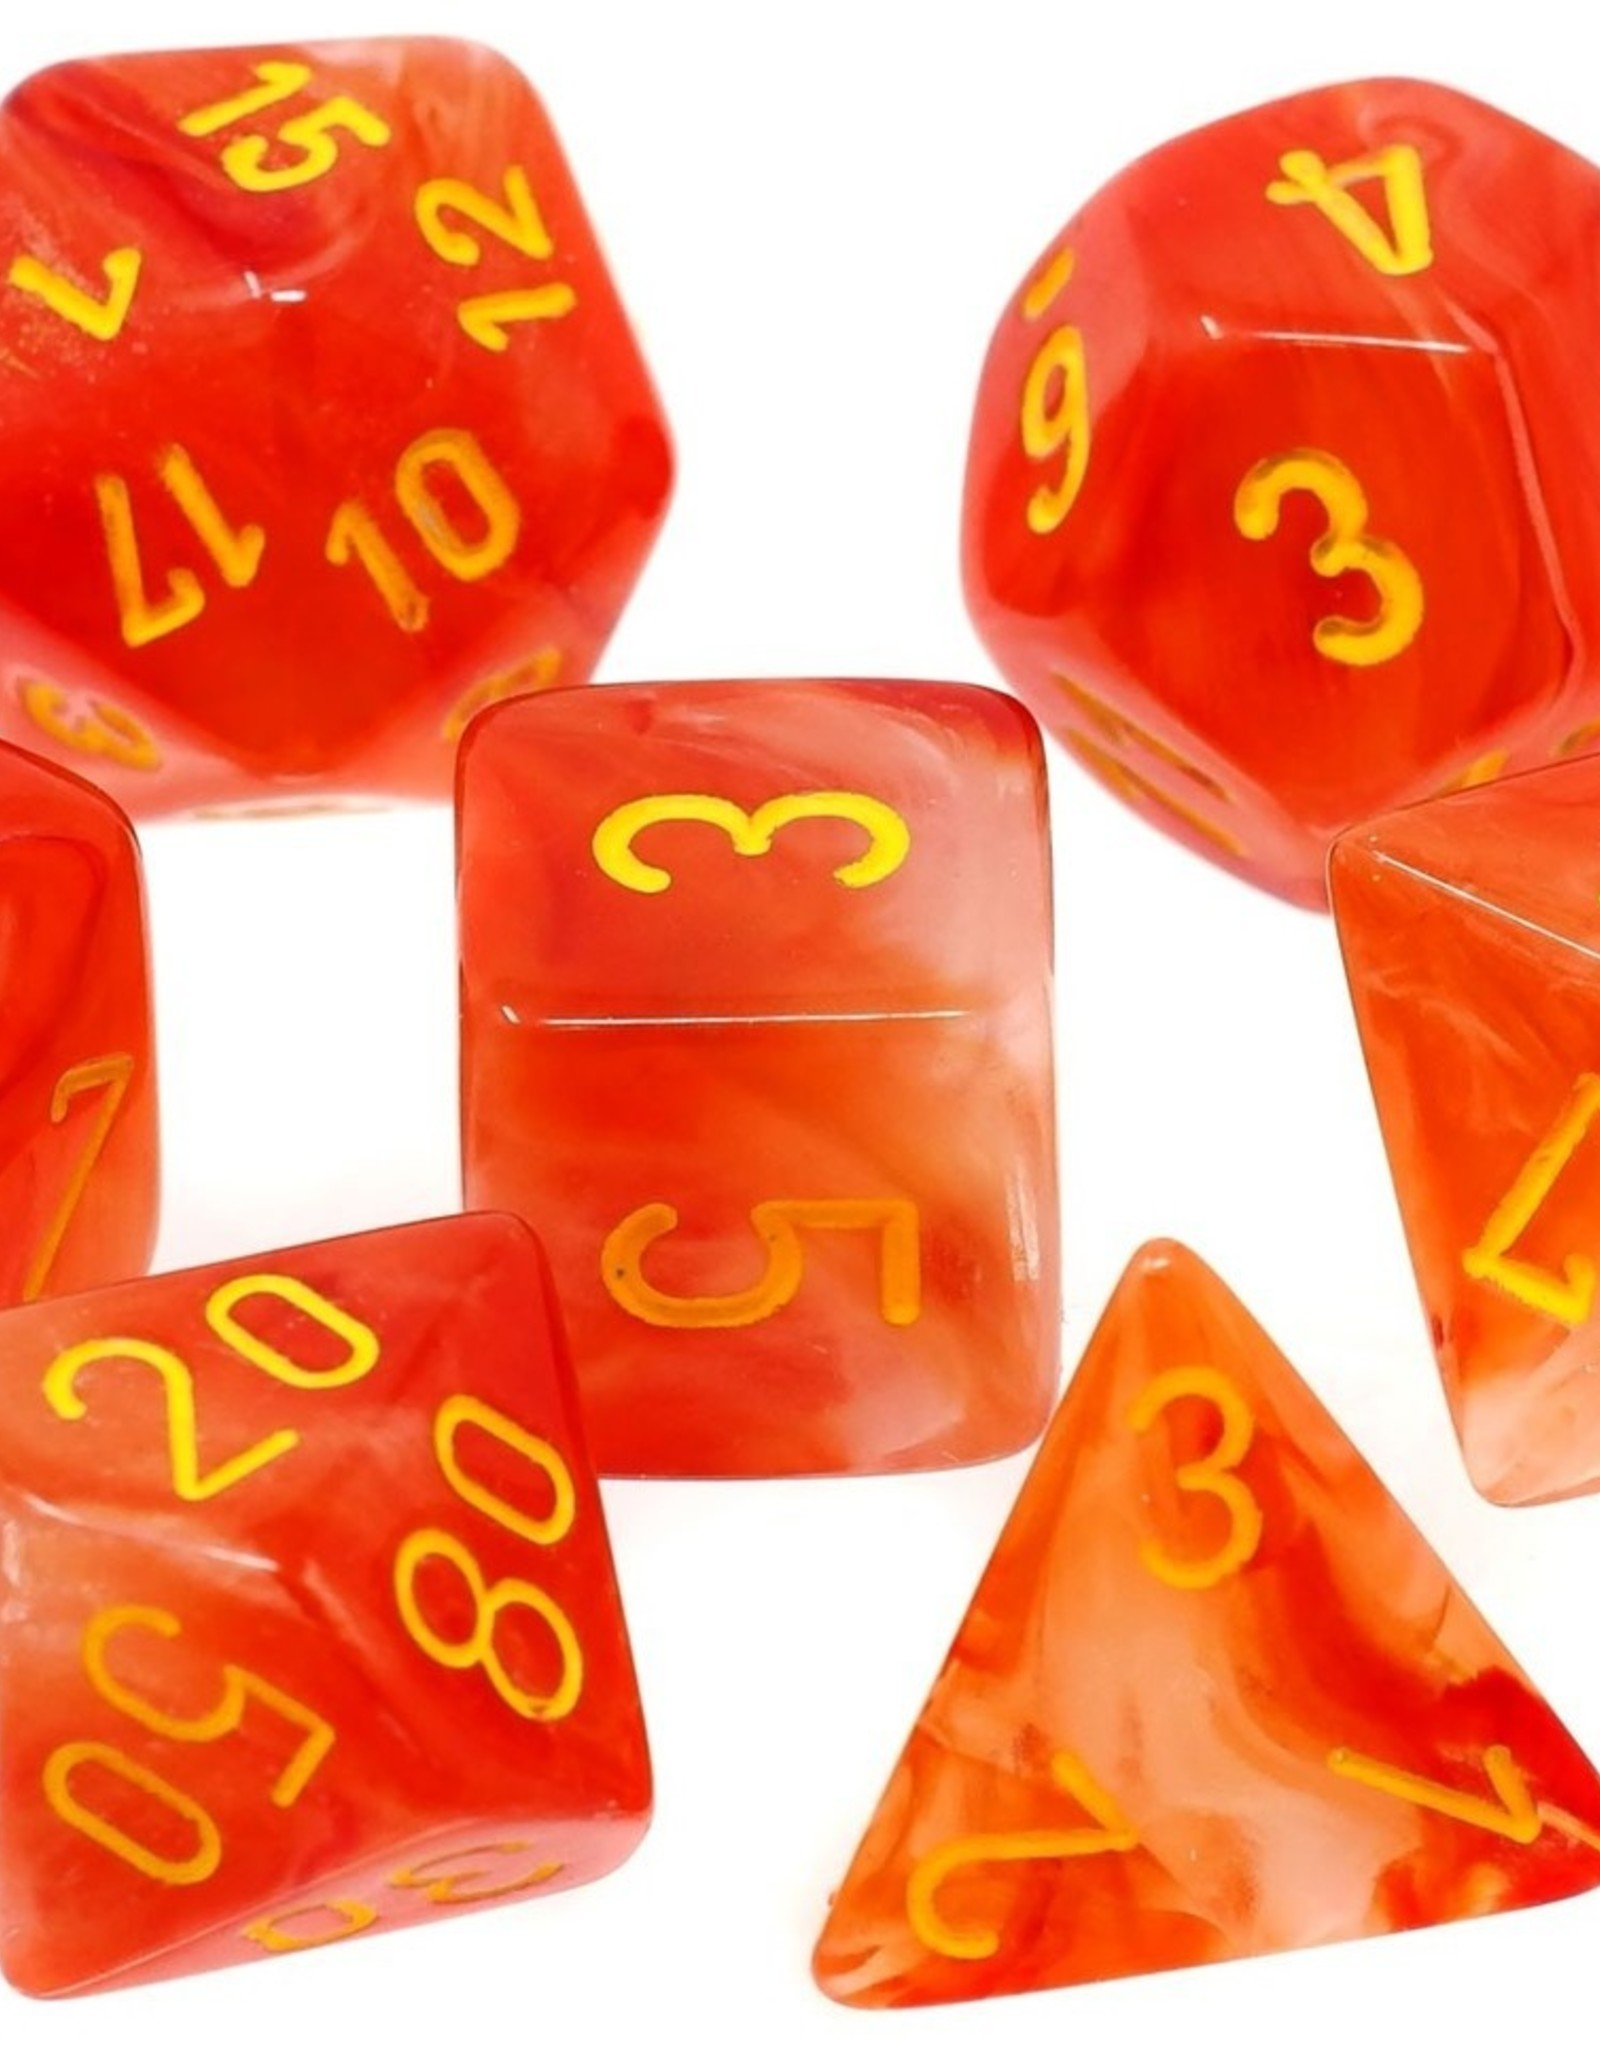 Chessex Chessex 7-Die set Ghostly Glow - Orange/Yellow